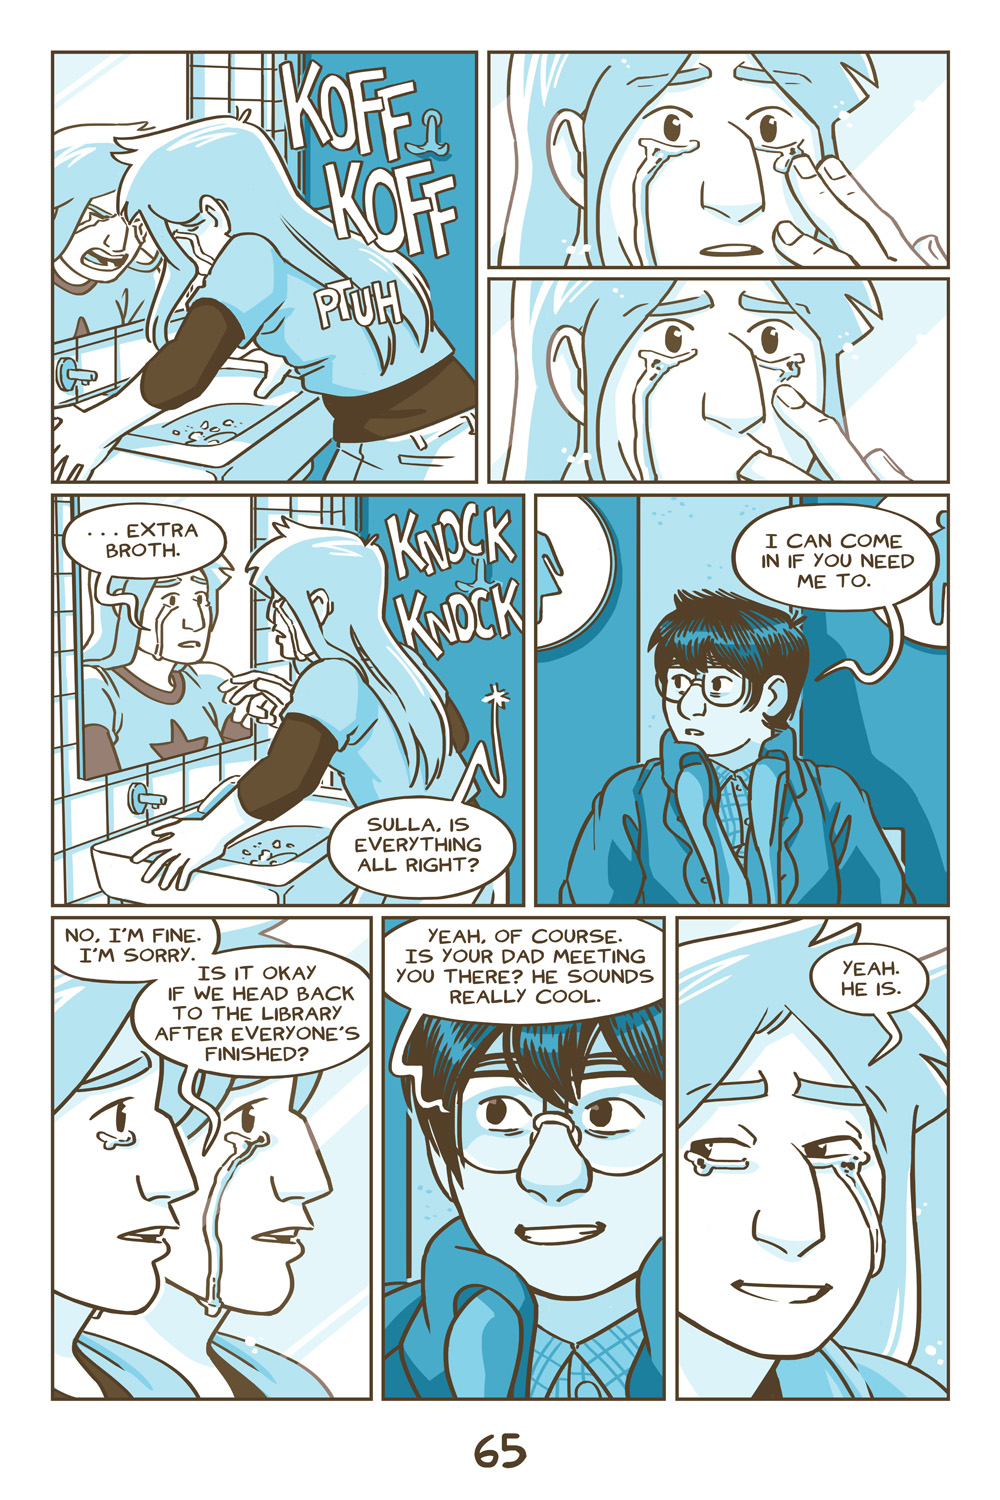 Chapter 4, Page 65